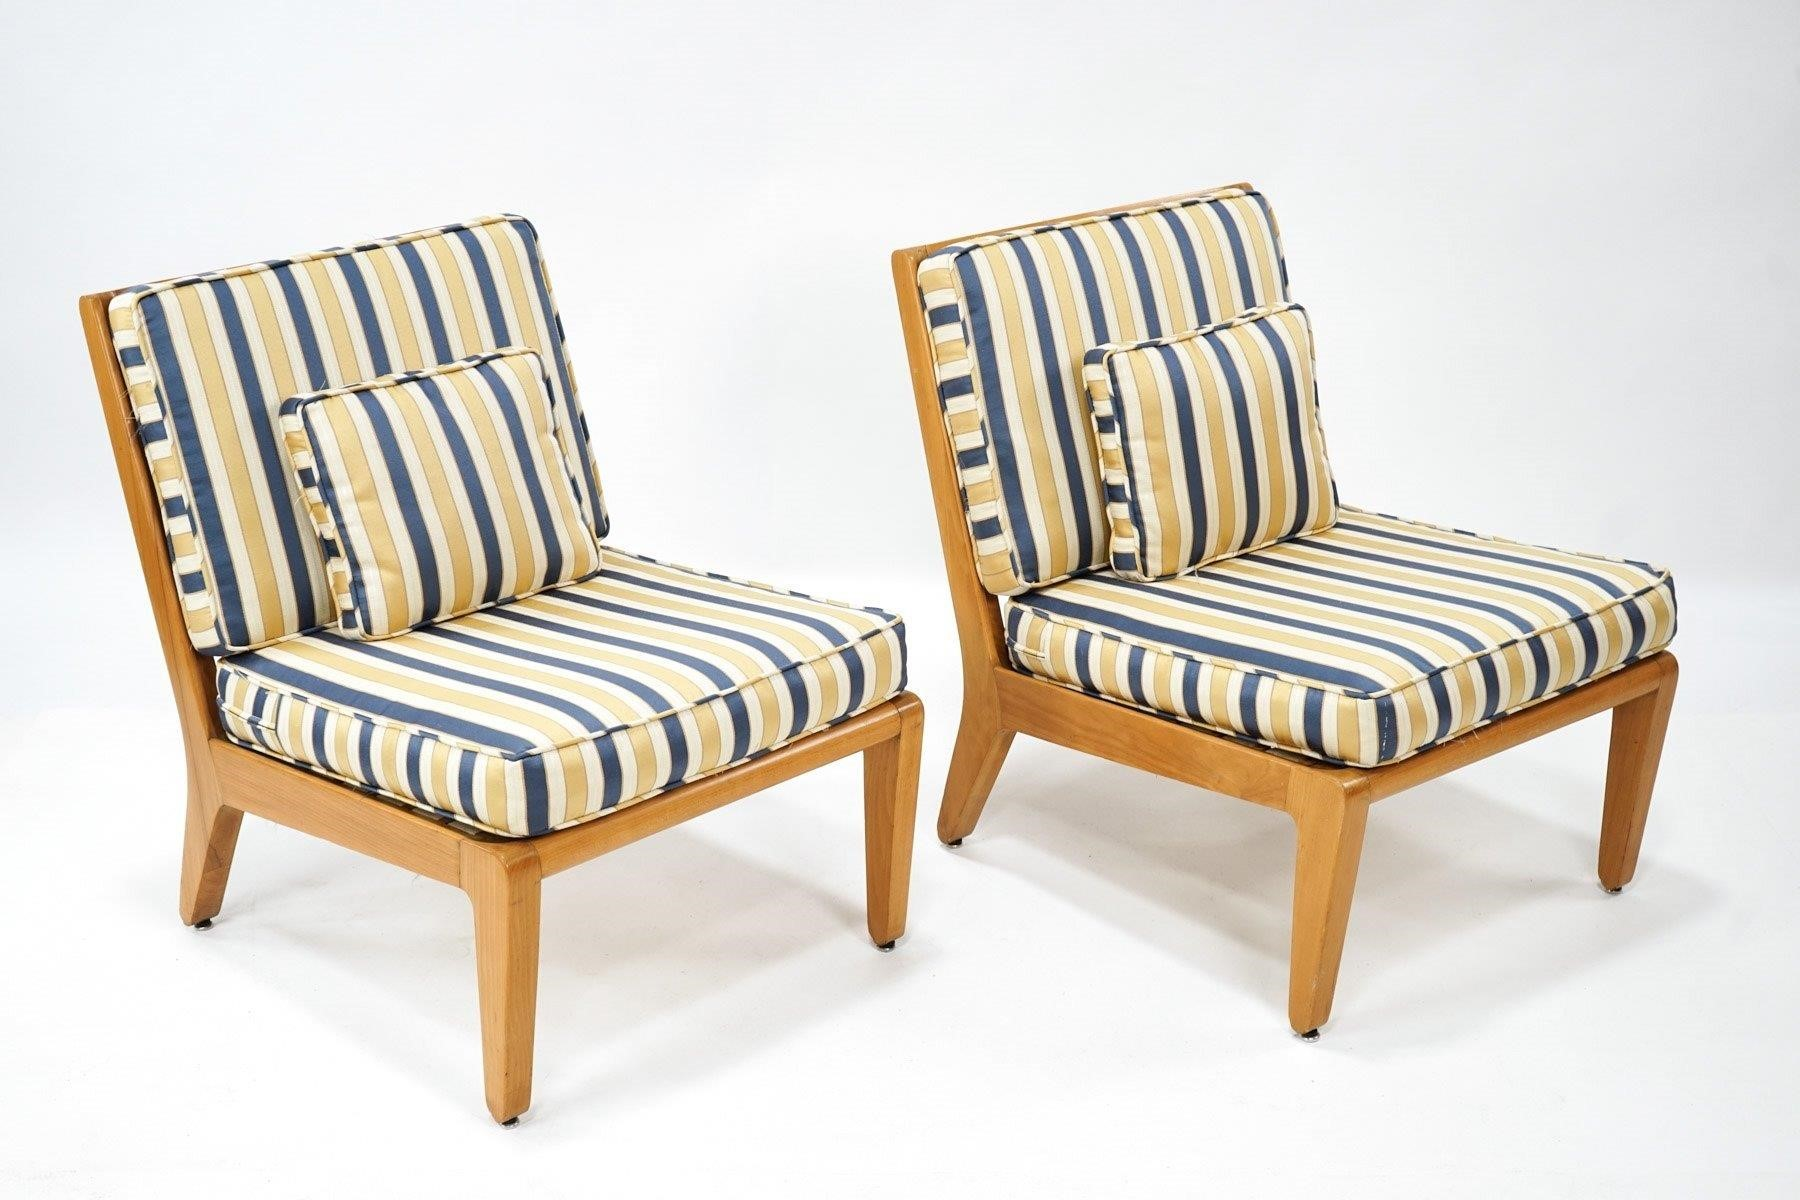 Pair of Edward Wormley Lounge Chairs for Drexel